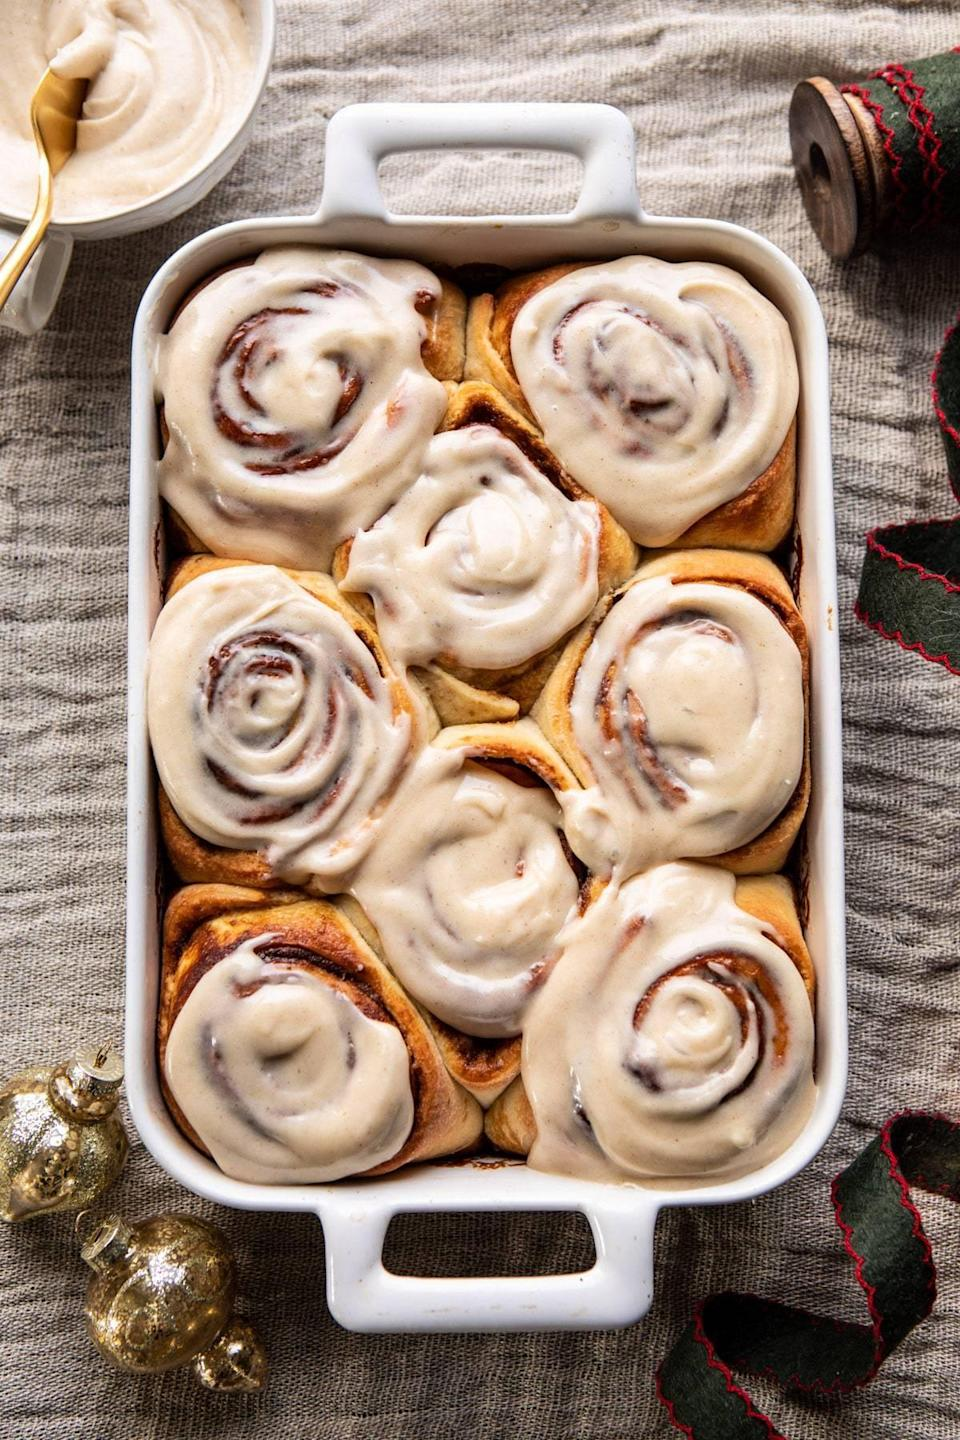 "<p>Onboard with the cinnamon roll hype, Montana locals are all about these glazed goodies. This recipe incorporates gingerbread into the mix, so you know it's about to be good.</p> <p><strong>Get the recipe</strong>: <a href=""https://www.halfbakedharvest.com/easy-gingerbread-brioche-cinnamon-rolls/"" class=""link rapid-noclick-resp"" rel=""nofollow noopener"" target=""_blank"" data-ylk=""slk:gingerbread brioche cinnamon rolls"">gingerbread brioche cinnamon rolls</a></p>"